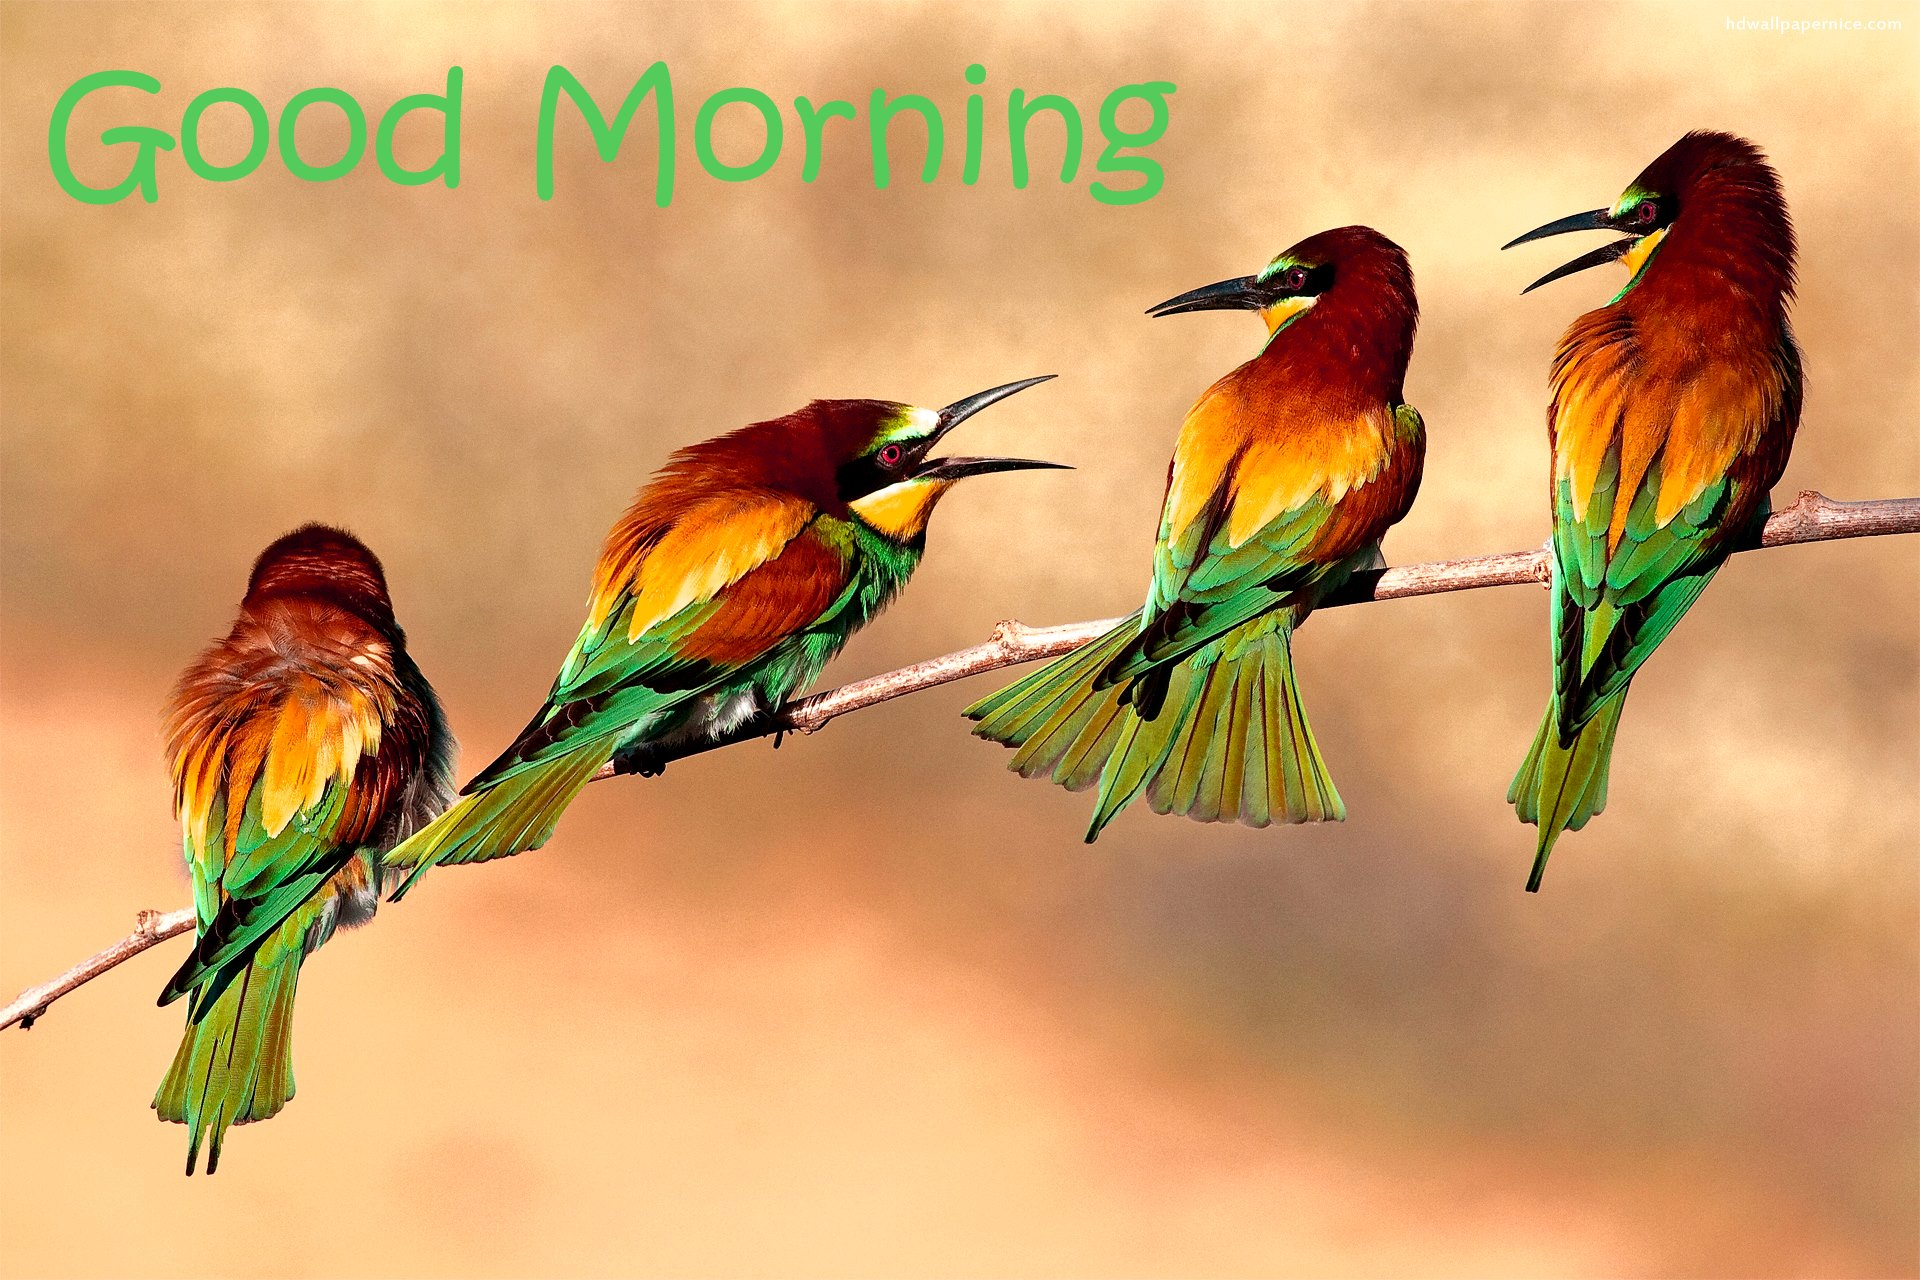 Good Morning Wishes With Birds Pictures Images Page 16